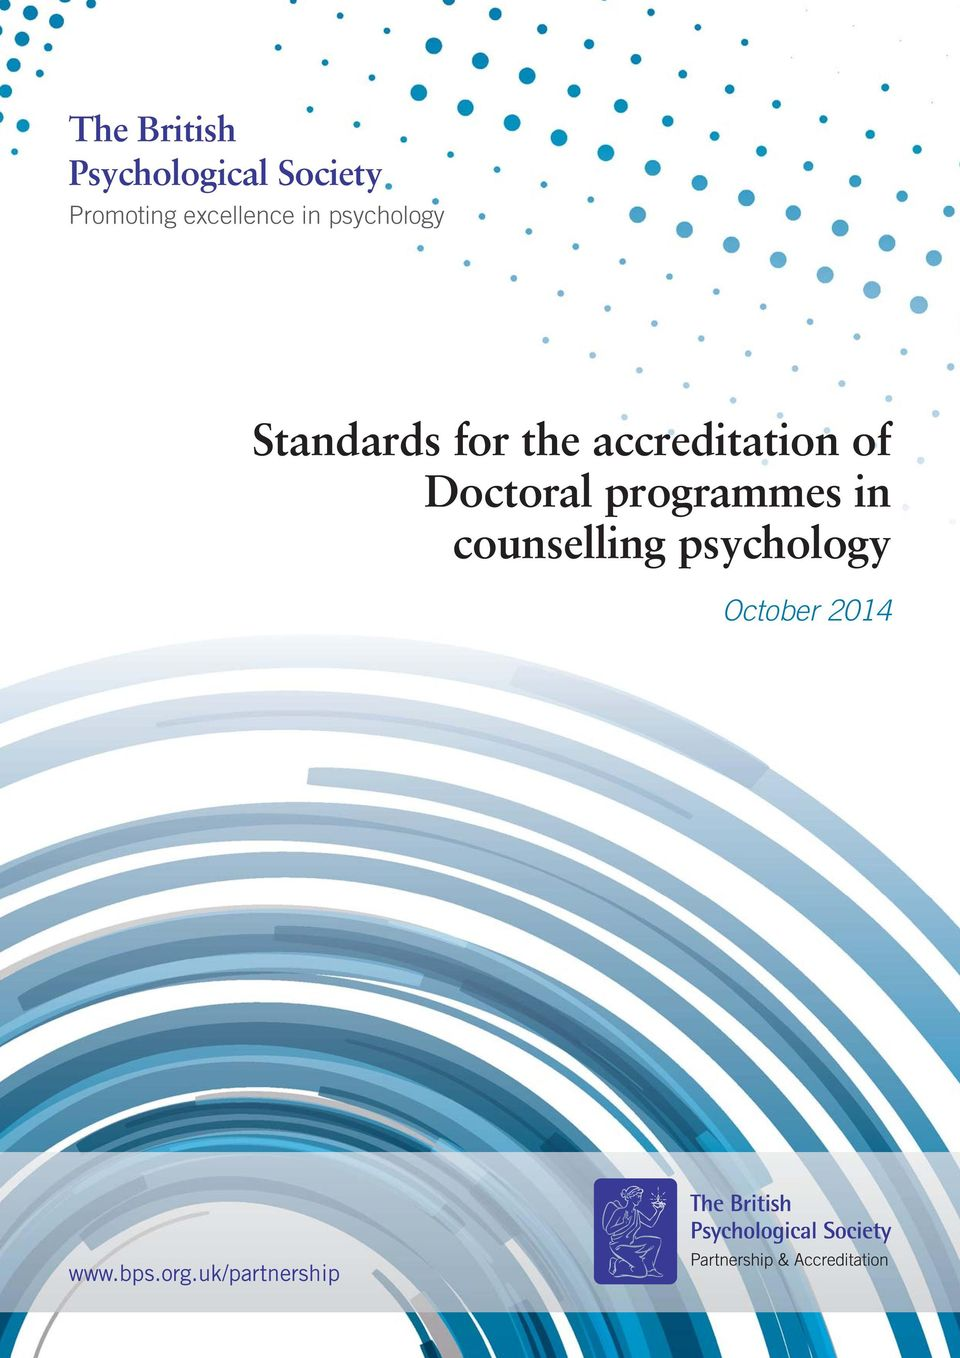 accreditation of Doctoral programmes in